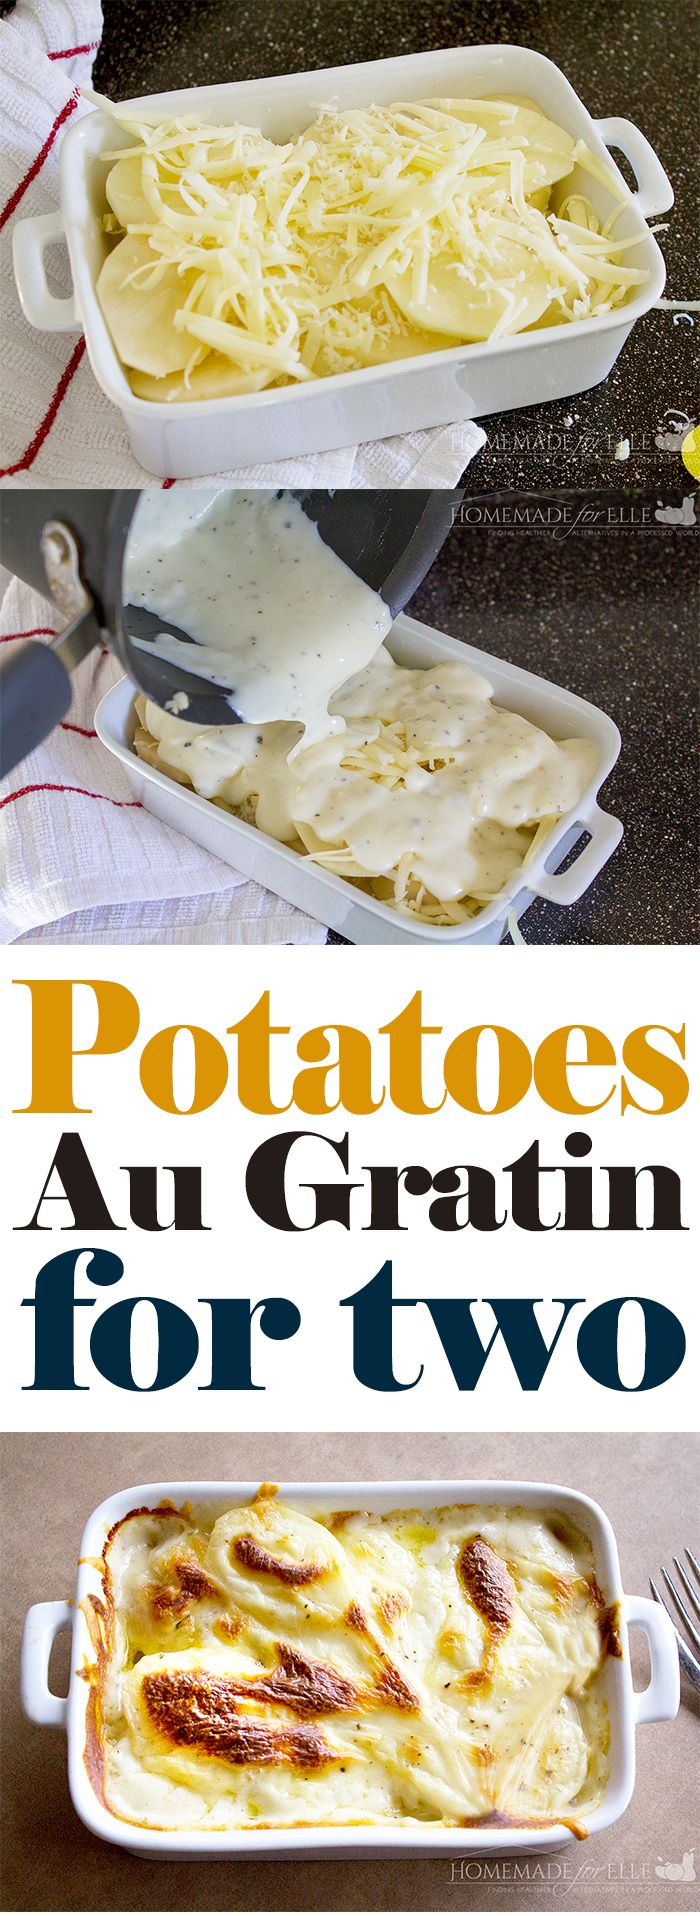 Potatoes Au Gratin for two - the perfect dish to make for you and a loved one | homemadeforelle.com